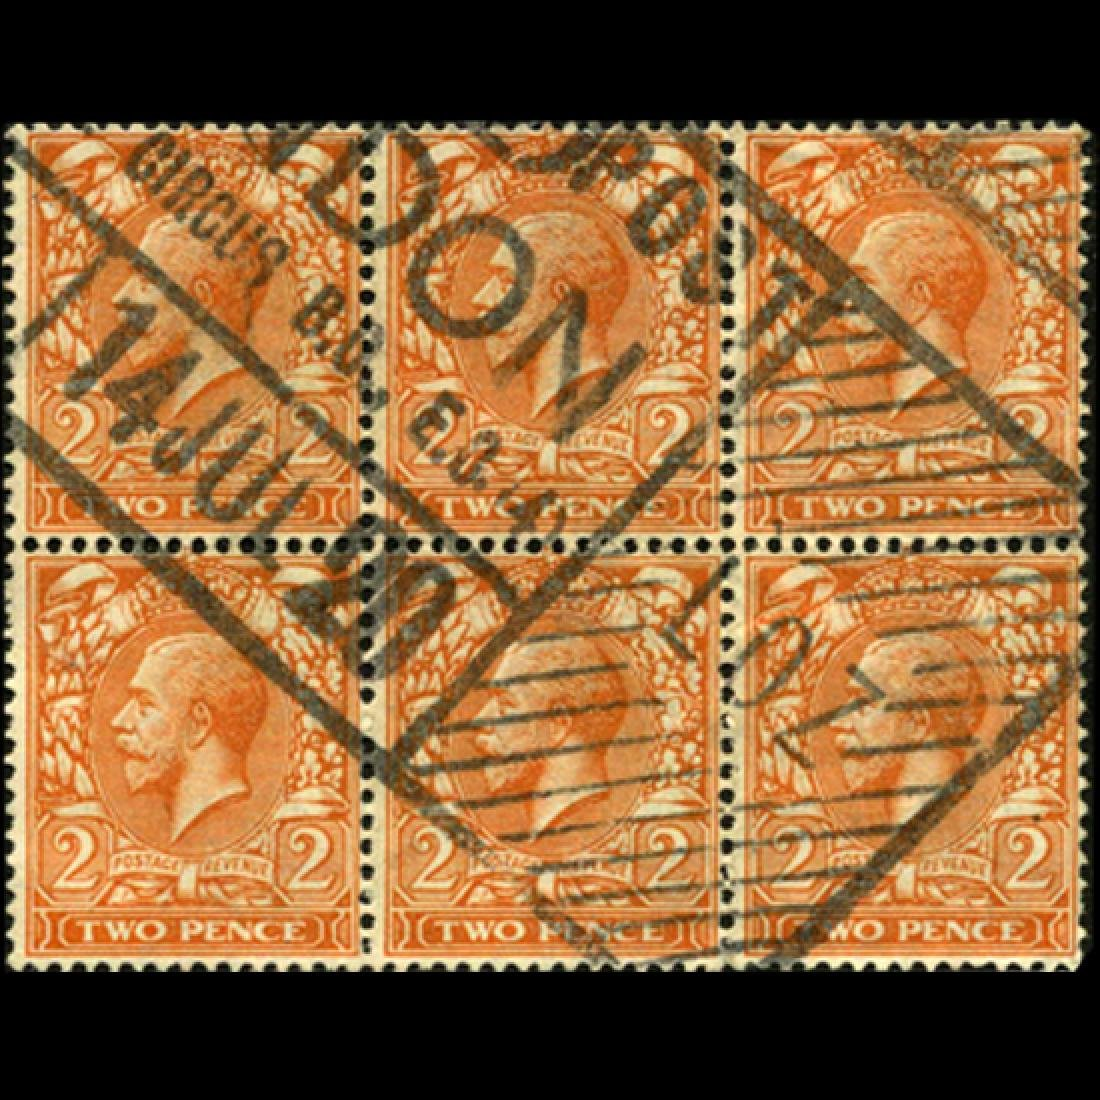 1916 Britain George VI 2p Stamp 6-Block